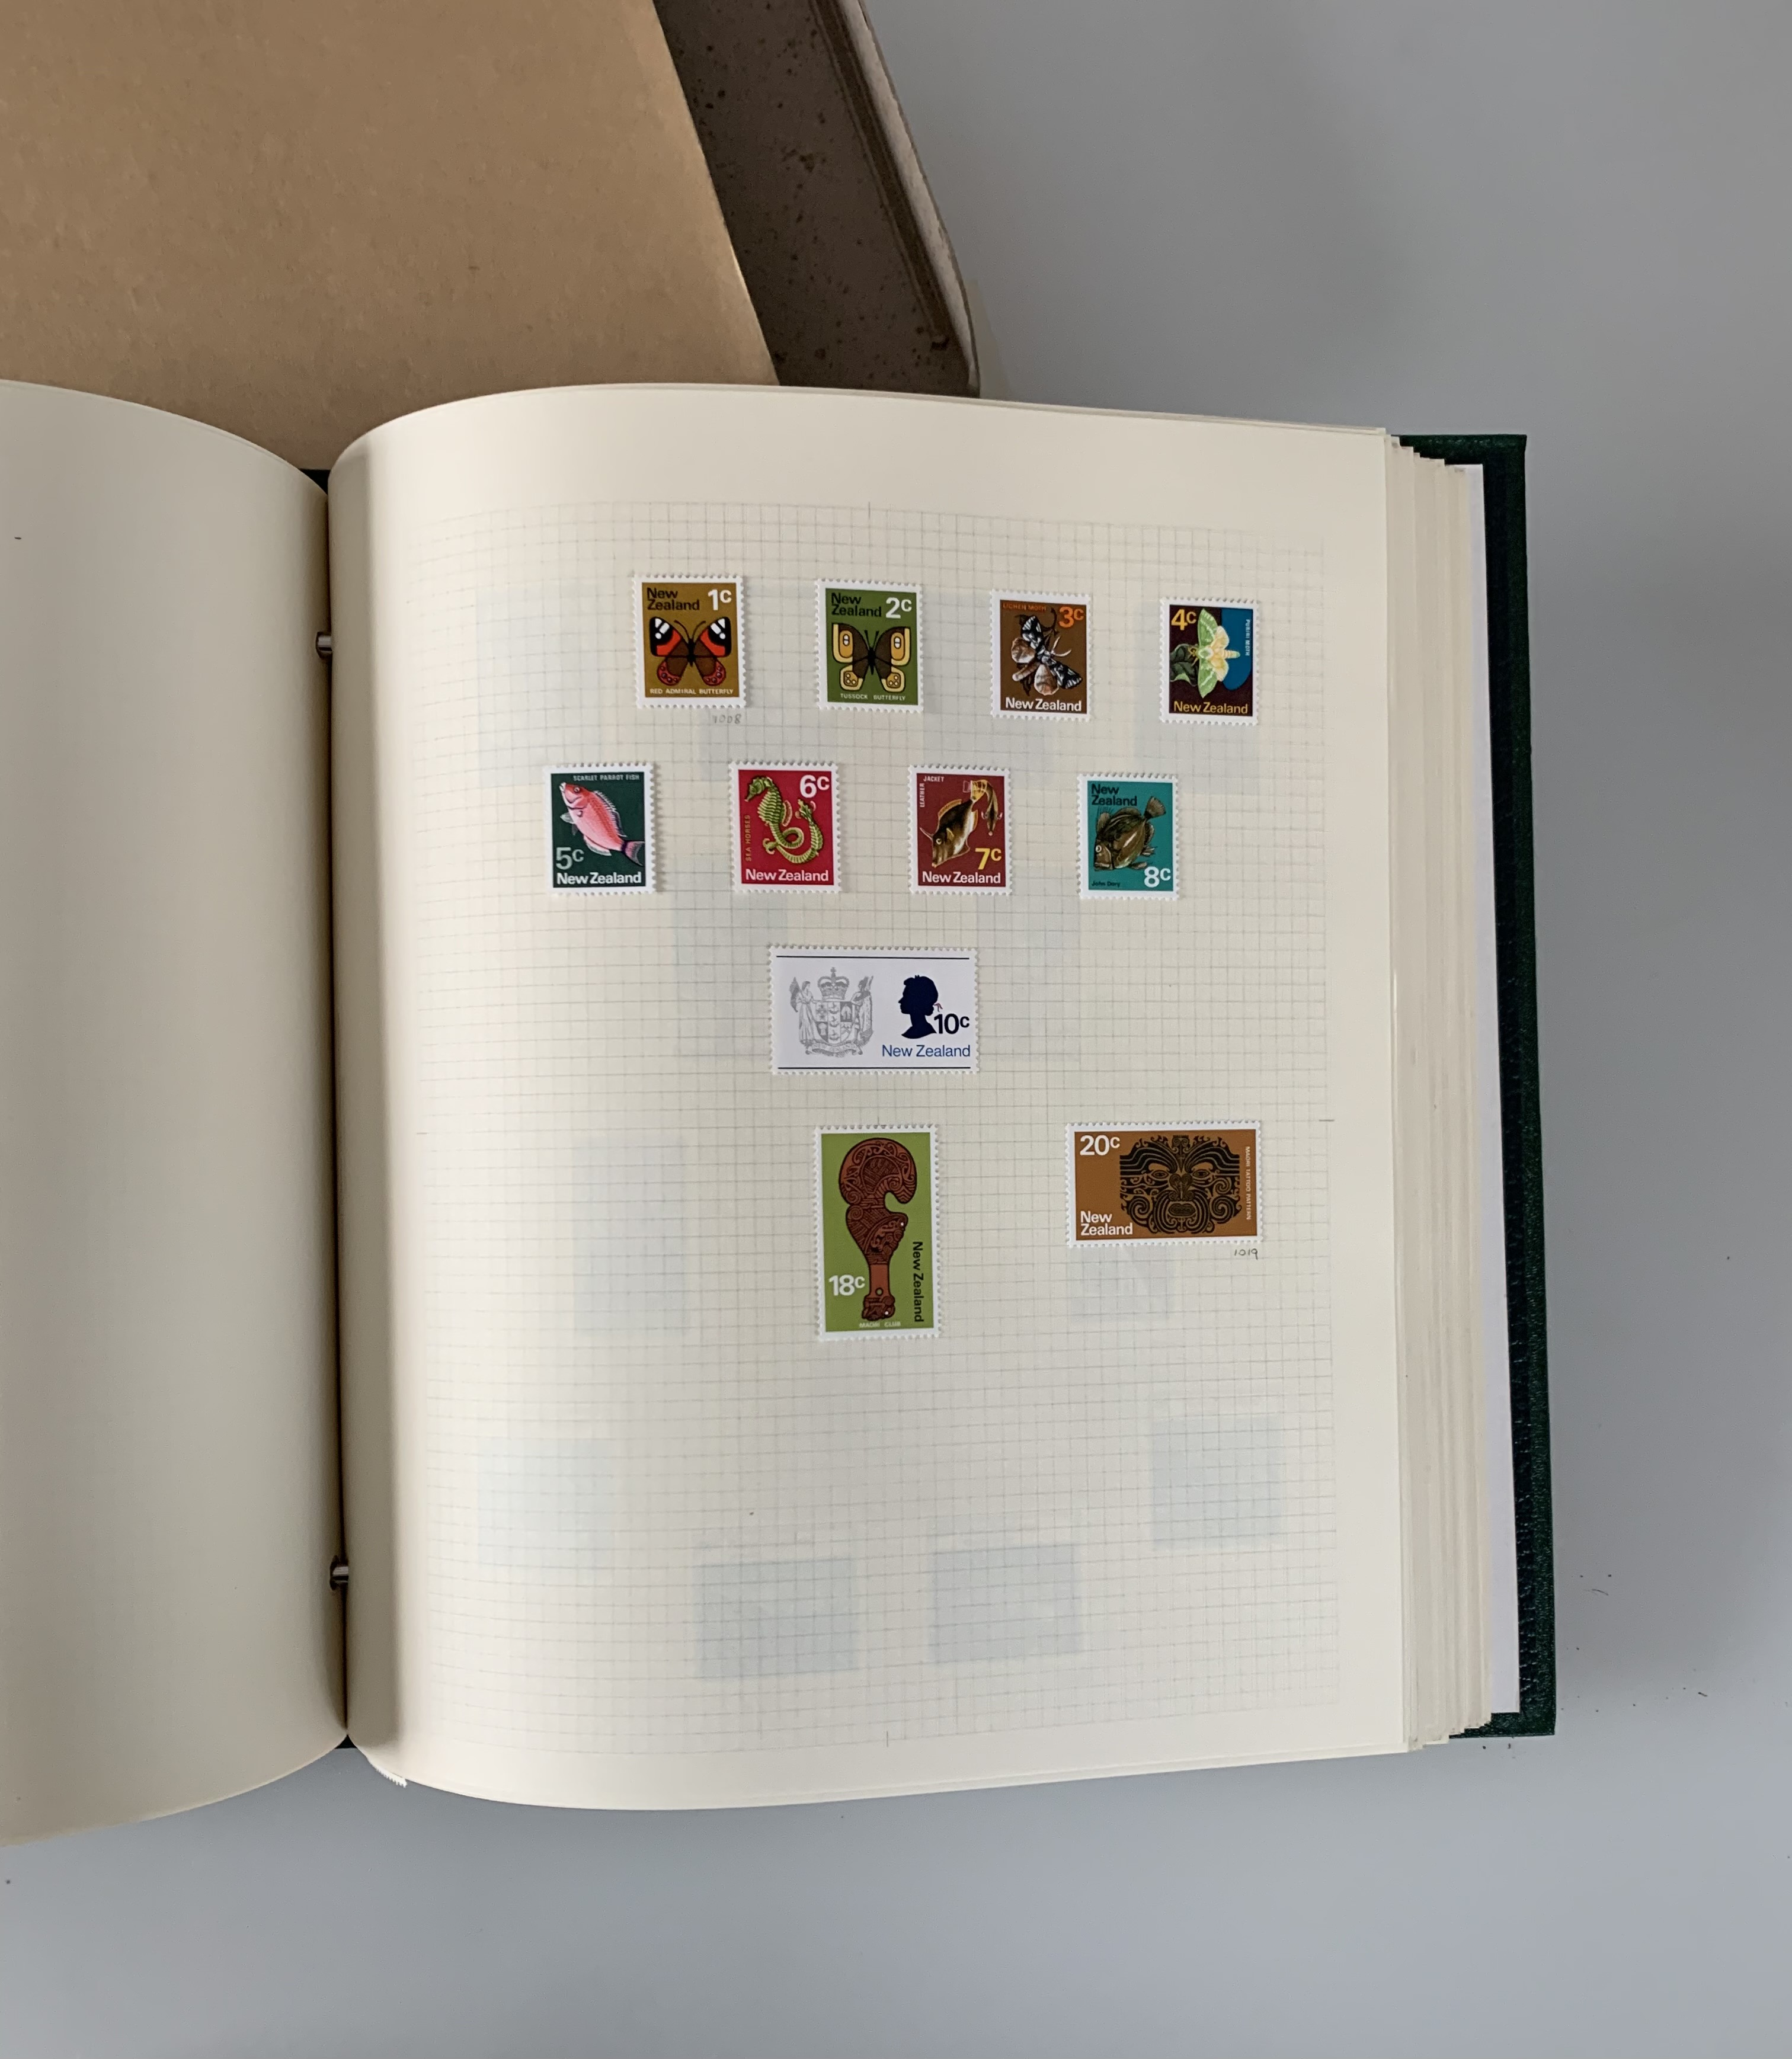 Boxed green Devon album of mint stamps, MAU-P - Image 3 of 3